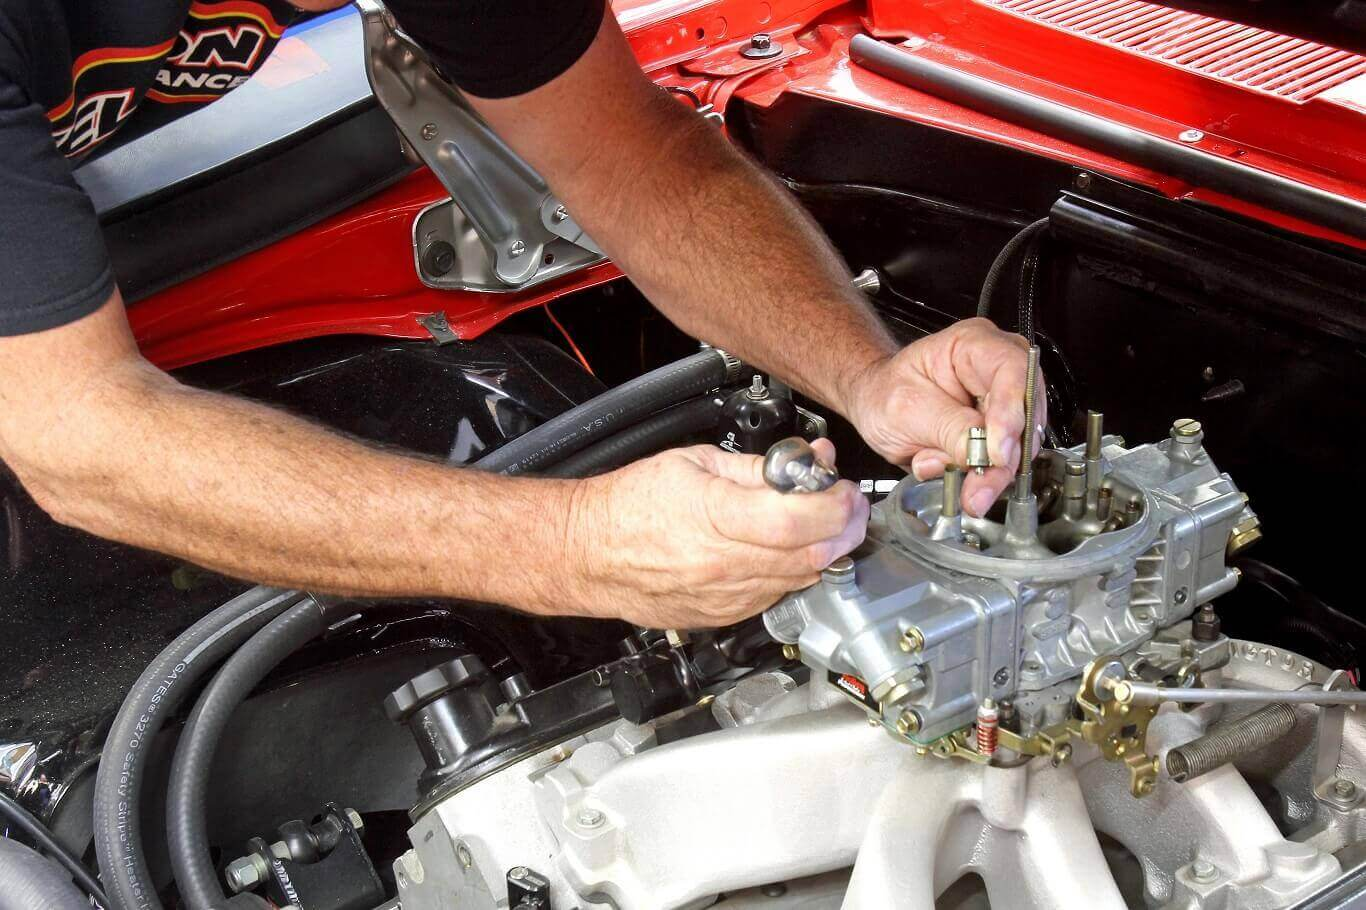 How to clean a car carburetor without removing it